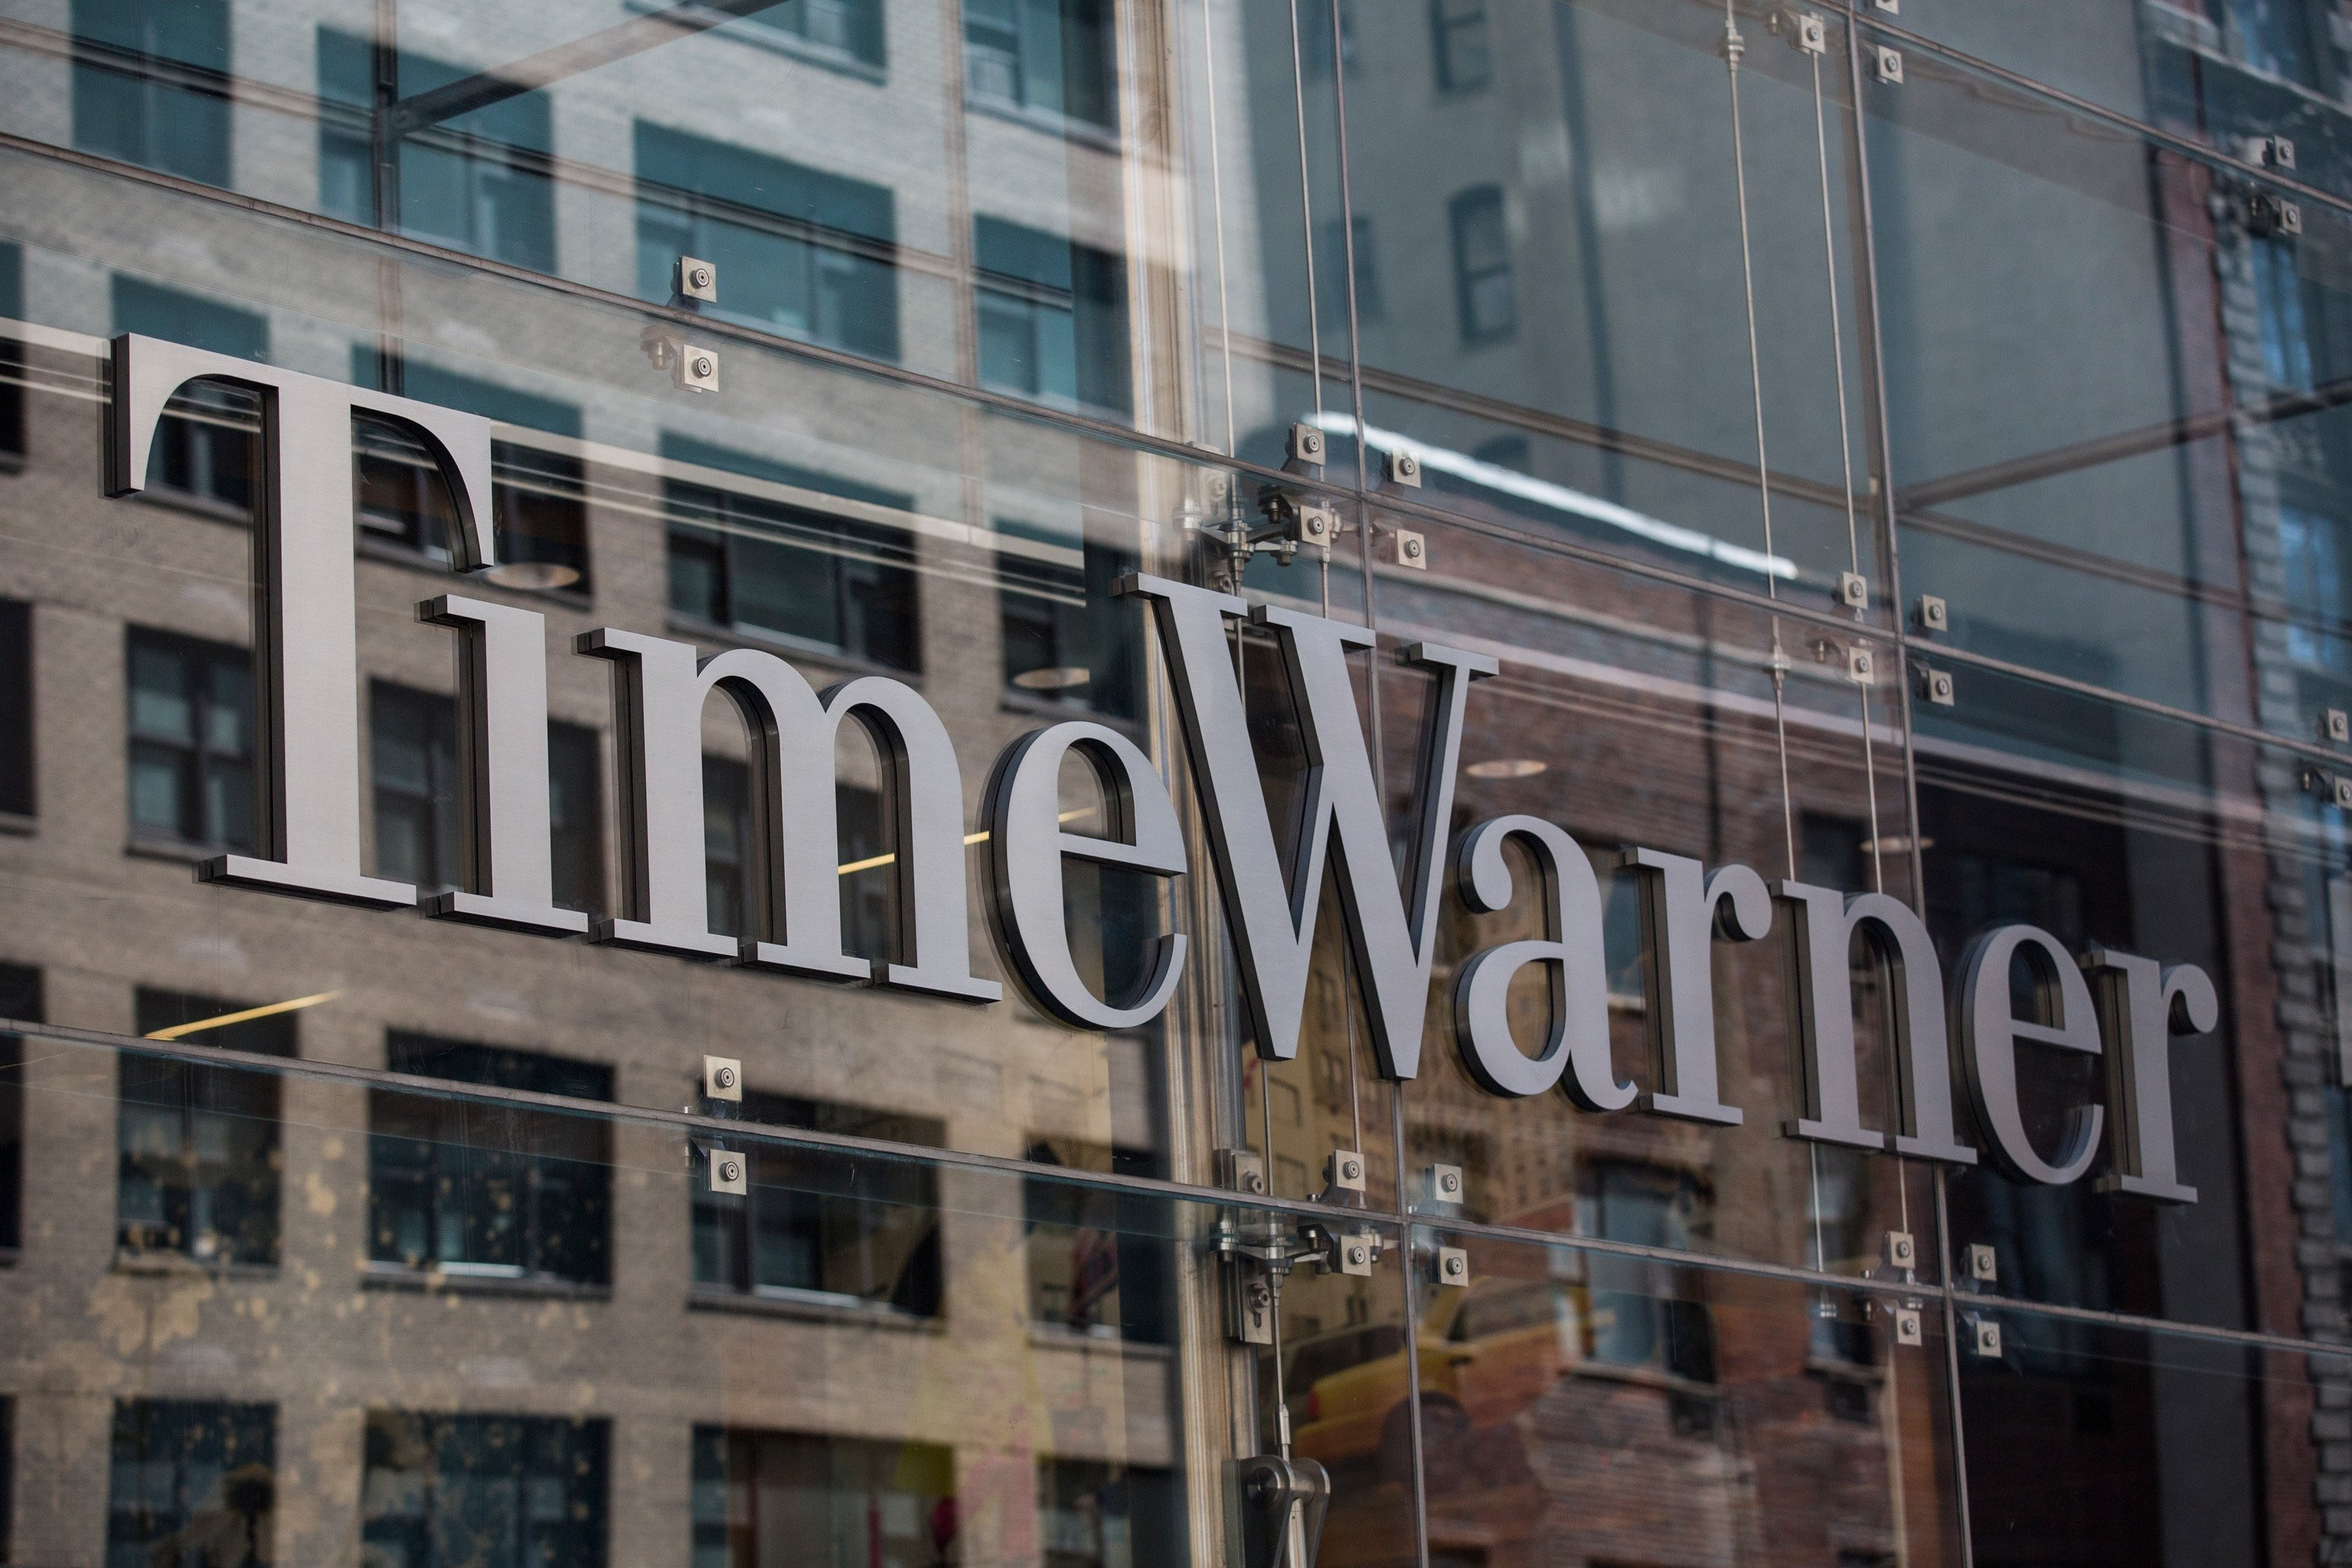 Time Warner Cable headquarters are seen in Columbus Circle on May 26, 2015 in New York City.